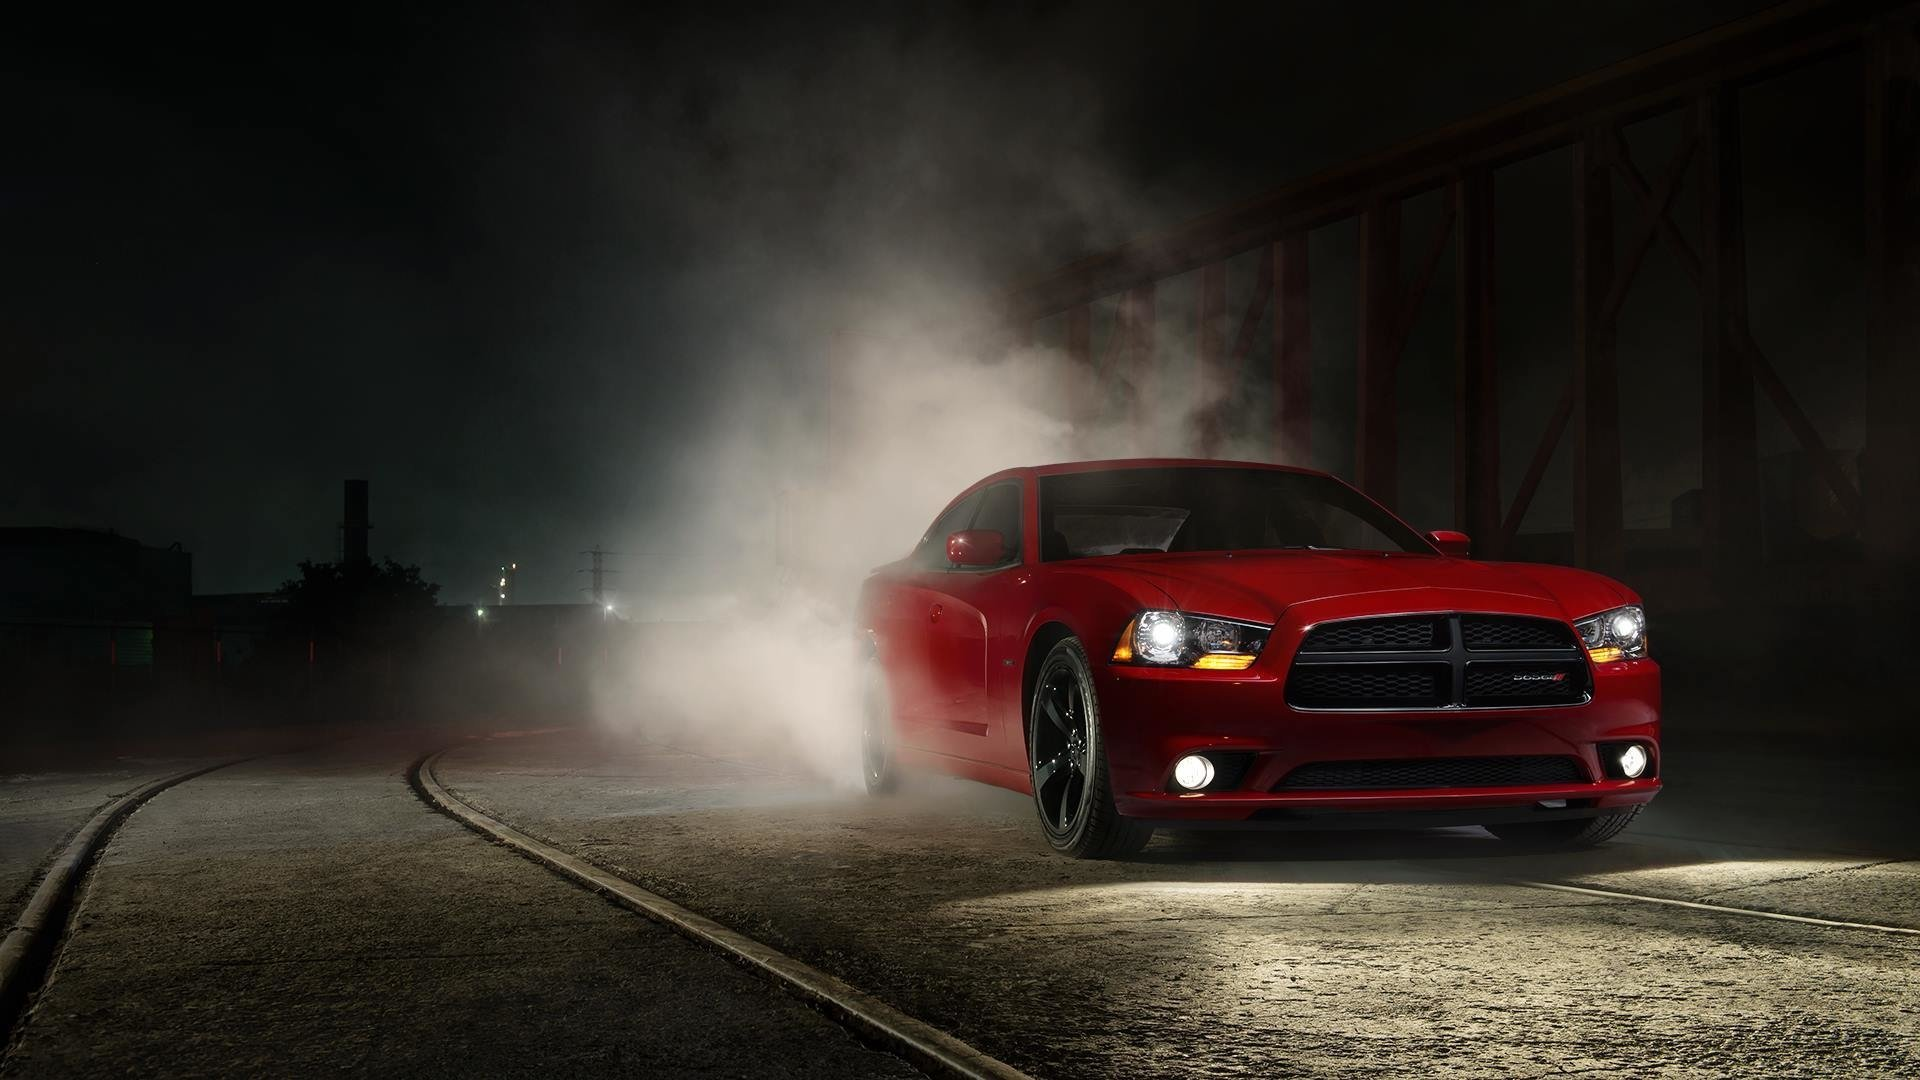 Dodge Charger Full HD Duvarkad And Arka Plan